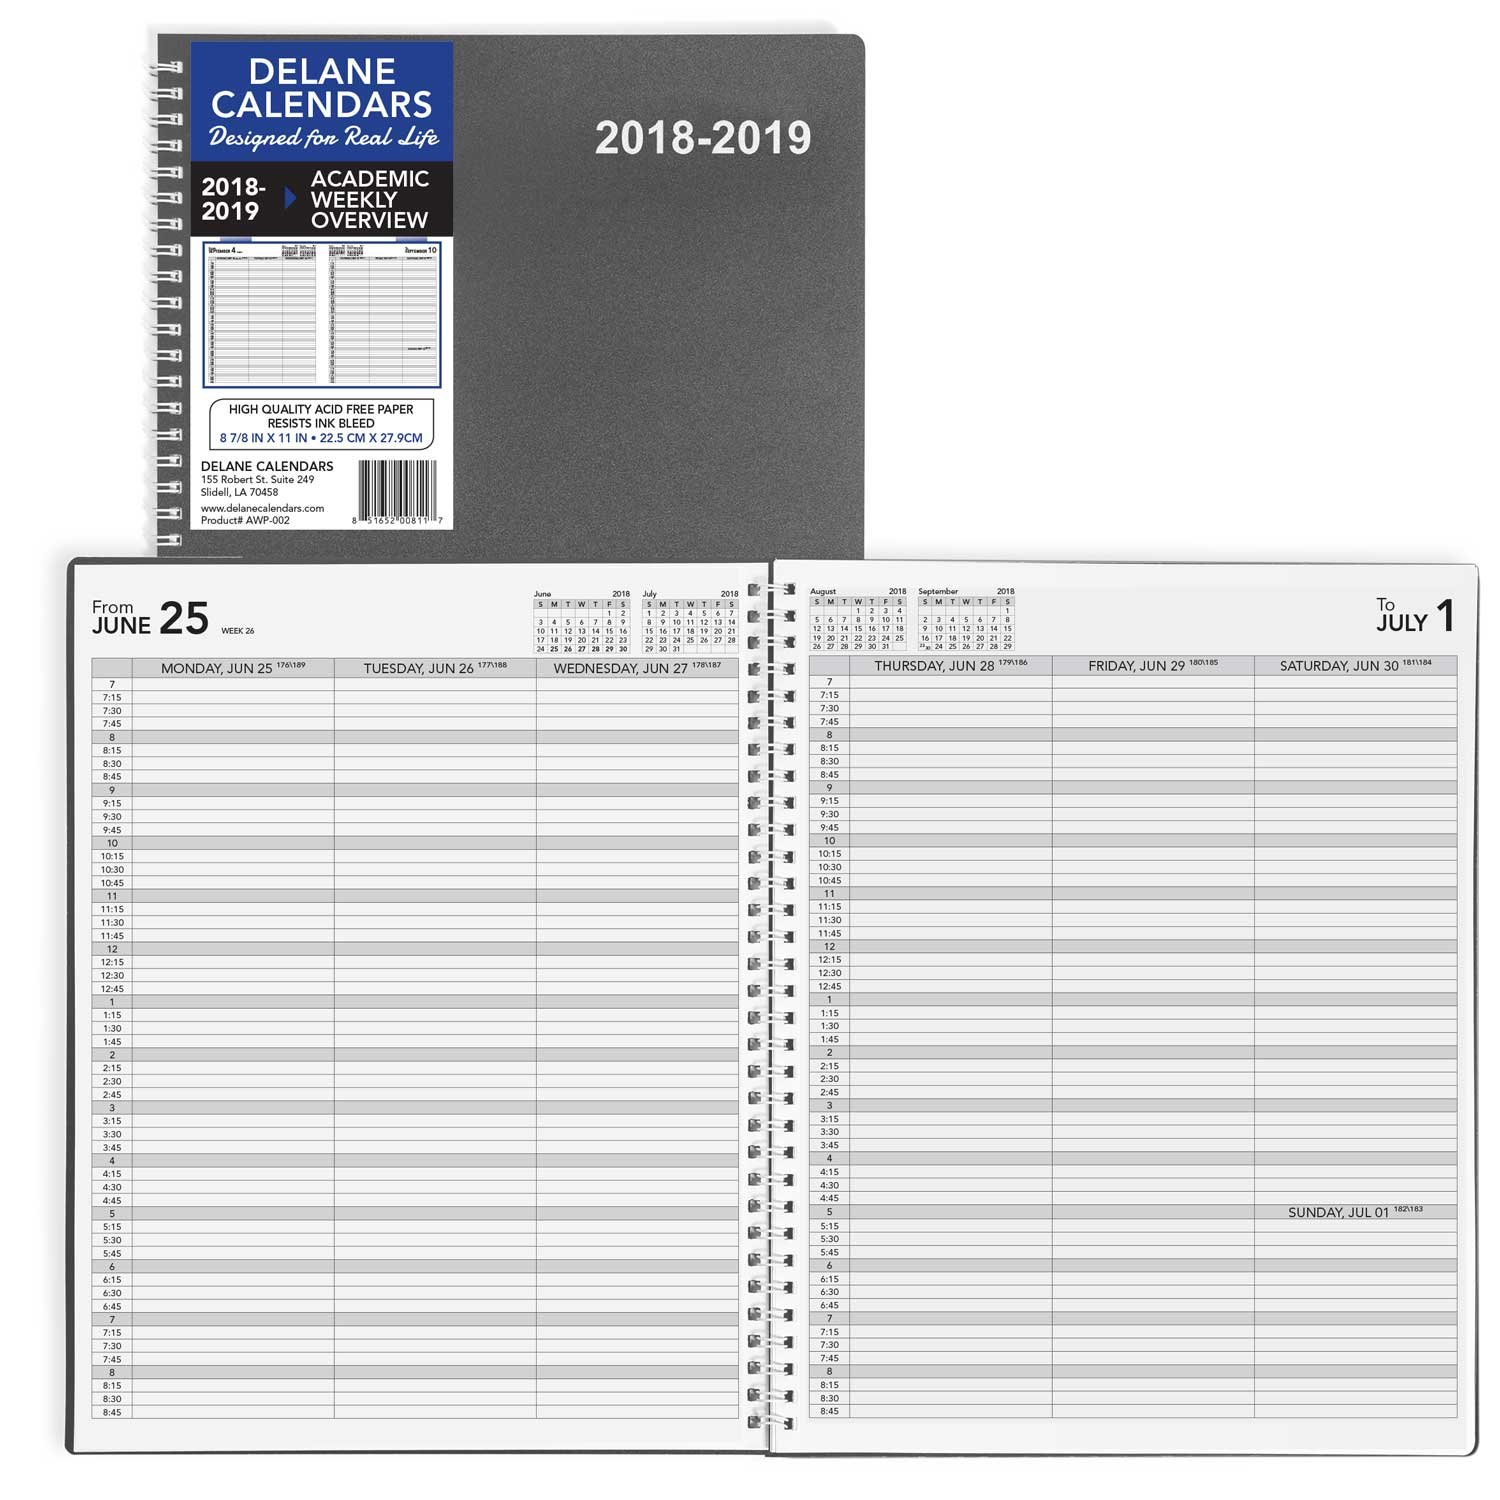 Academic Weekly Planner 2018-2019 Appointment Book, 8.5 x 11 inches, Premium Paper, Daily Planner Hourly, Grey